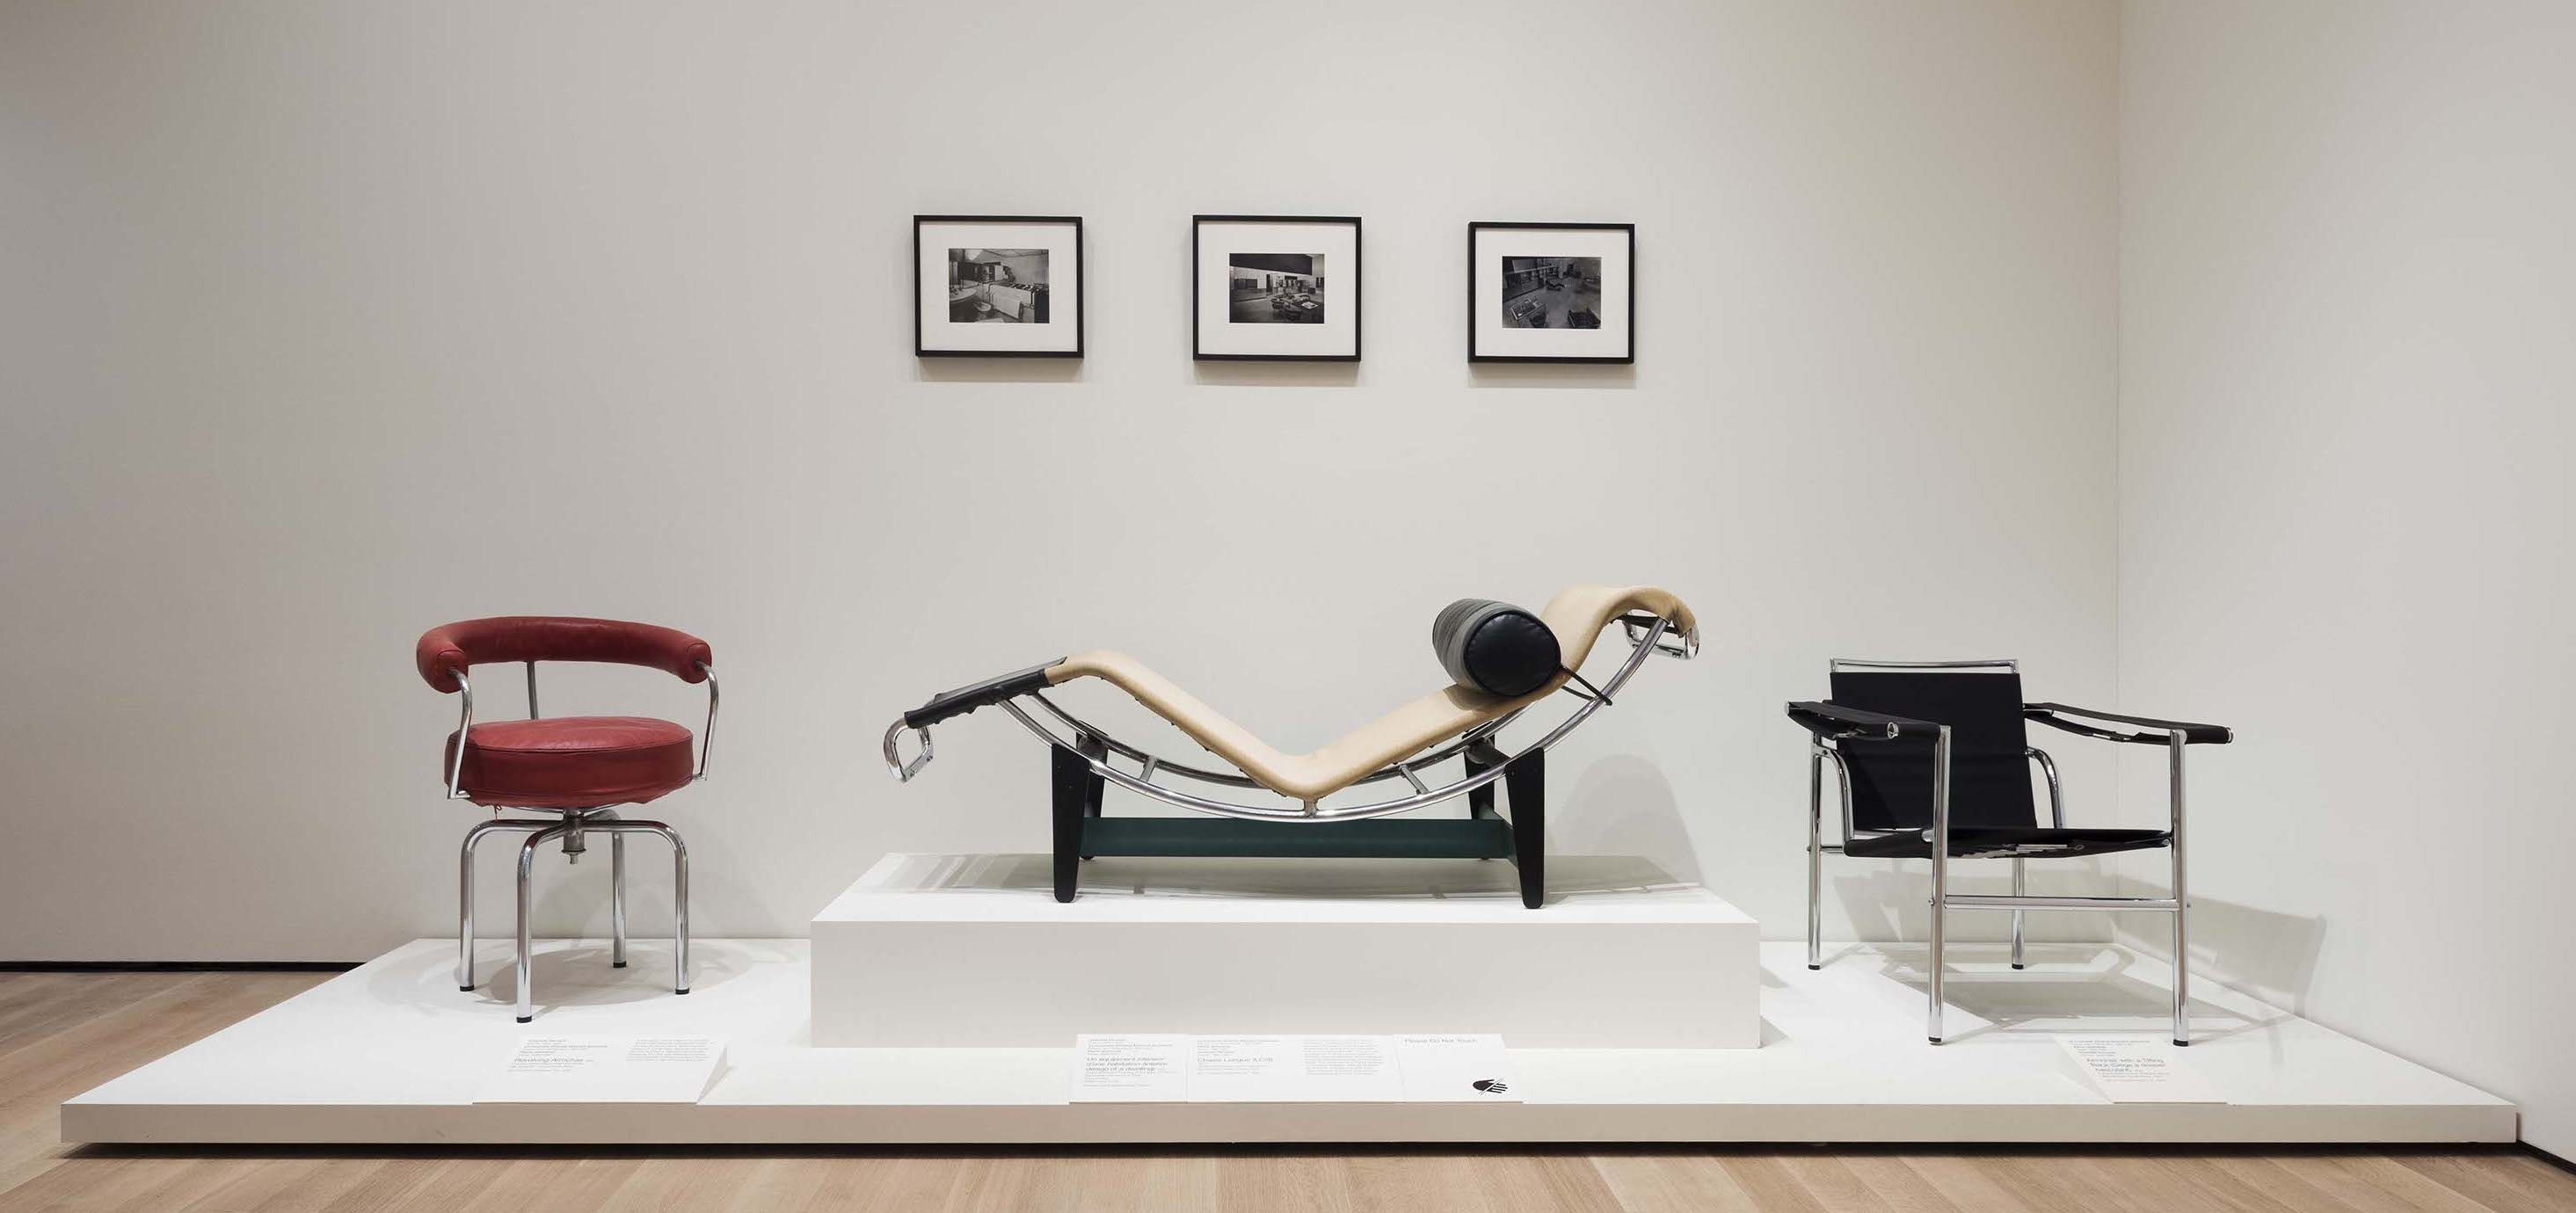 Propositions For The Modern Interior. The Museum Of Modern Art, New York,  October 1, 2016 April 23, 2017. © 2016 The Museum Of Modern Art. Photo:  Martin ...